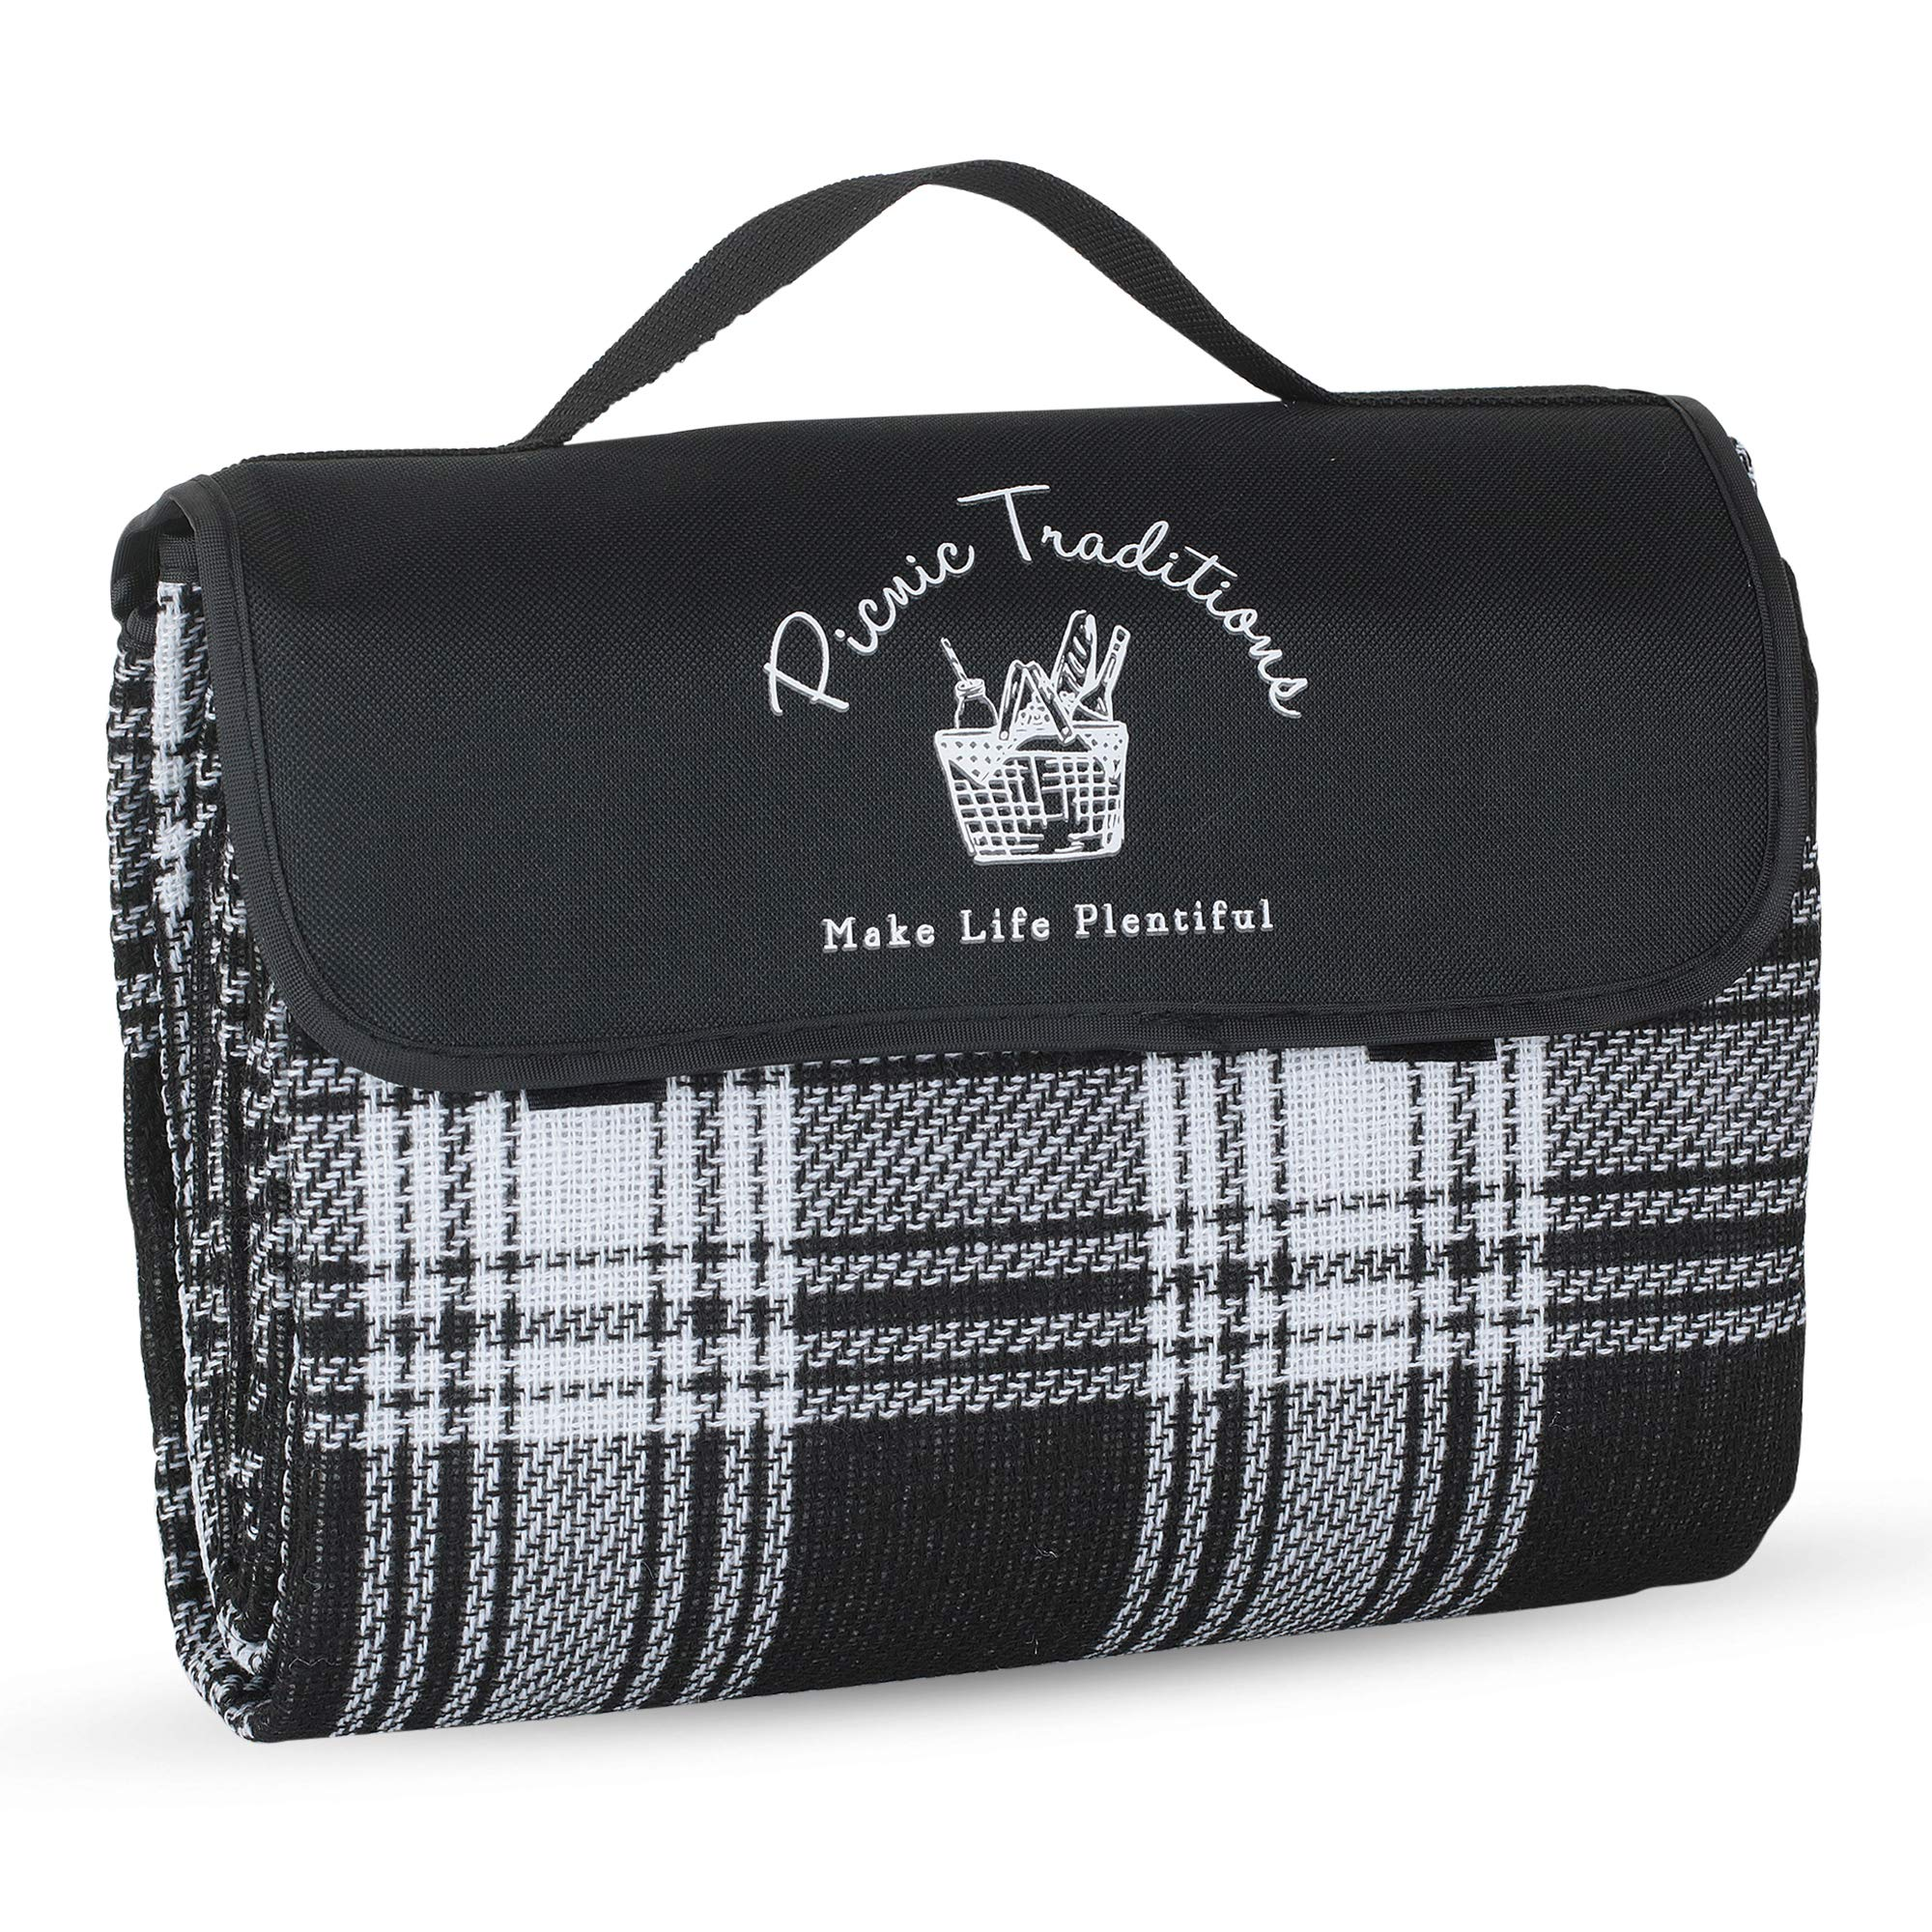 Picnic Traditions Large Picnic Blanket Water Resistant Tote - Great for Picnics, Camping on Grass, at The Beach, Tailgating at Stadiums, Durable Mat has Waterproof PEVA Backing - 69 x 53 in. (Black) by Picnic Traditions